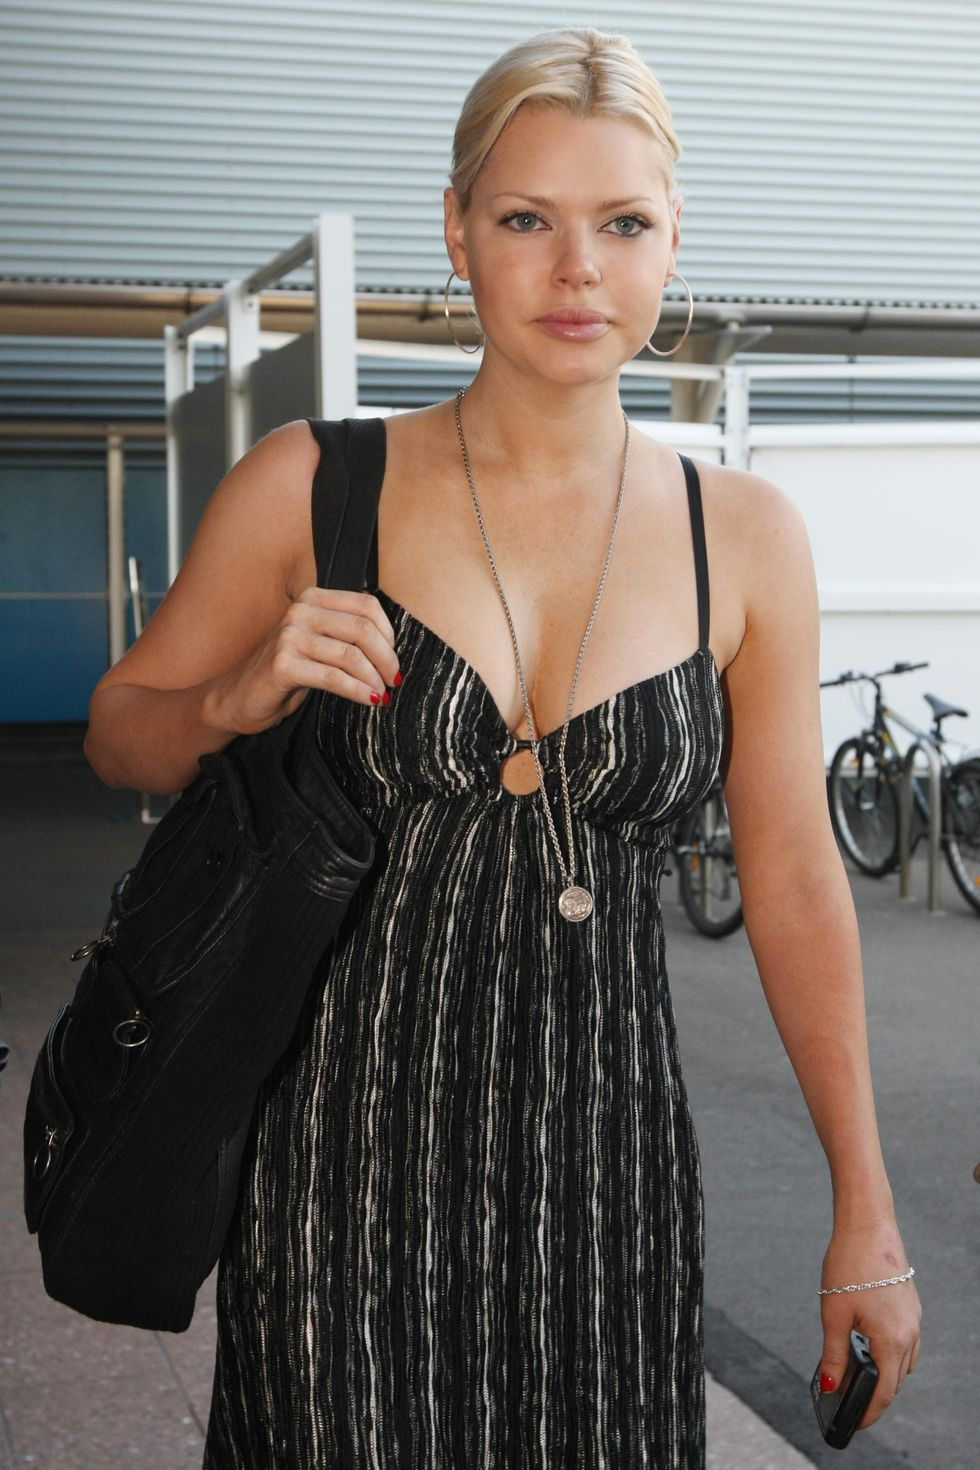 sophie-monk-cleavage-candids-at-sydney-airport-01